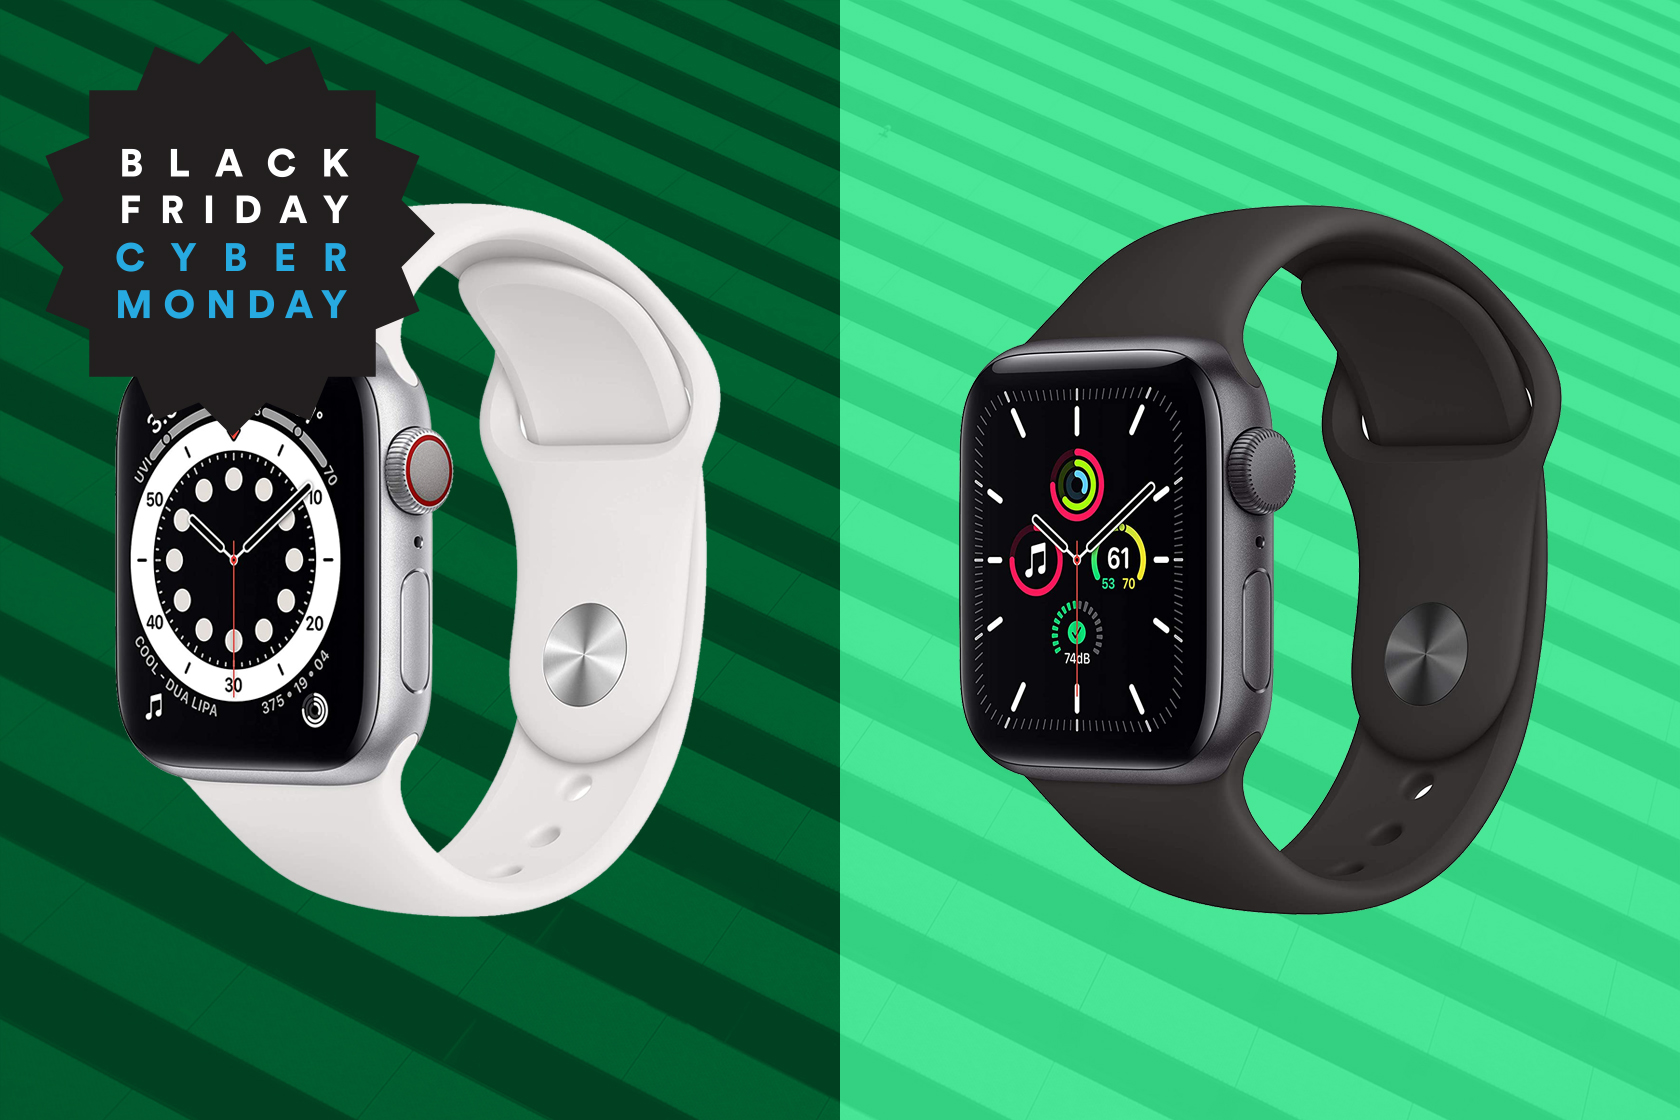 The Apple Watch Series 6 is $70 off at Best Buy